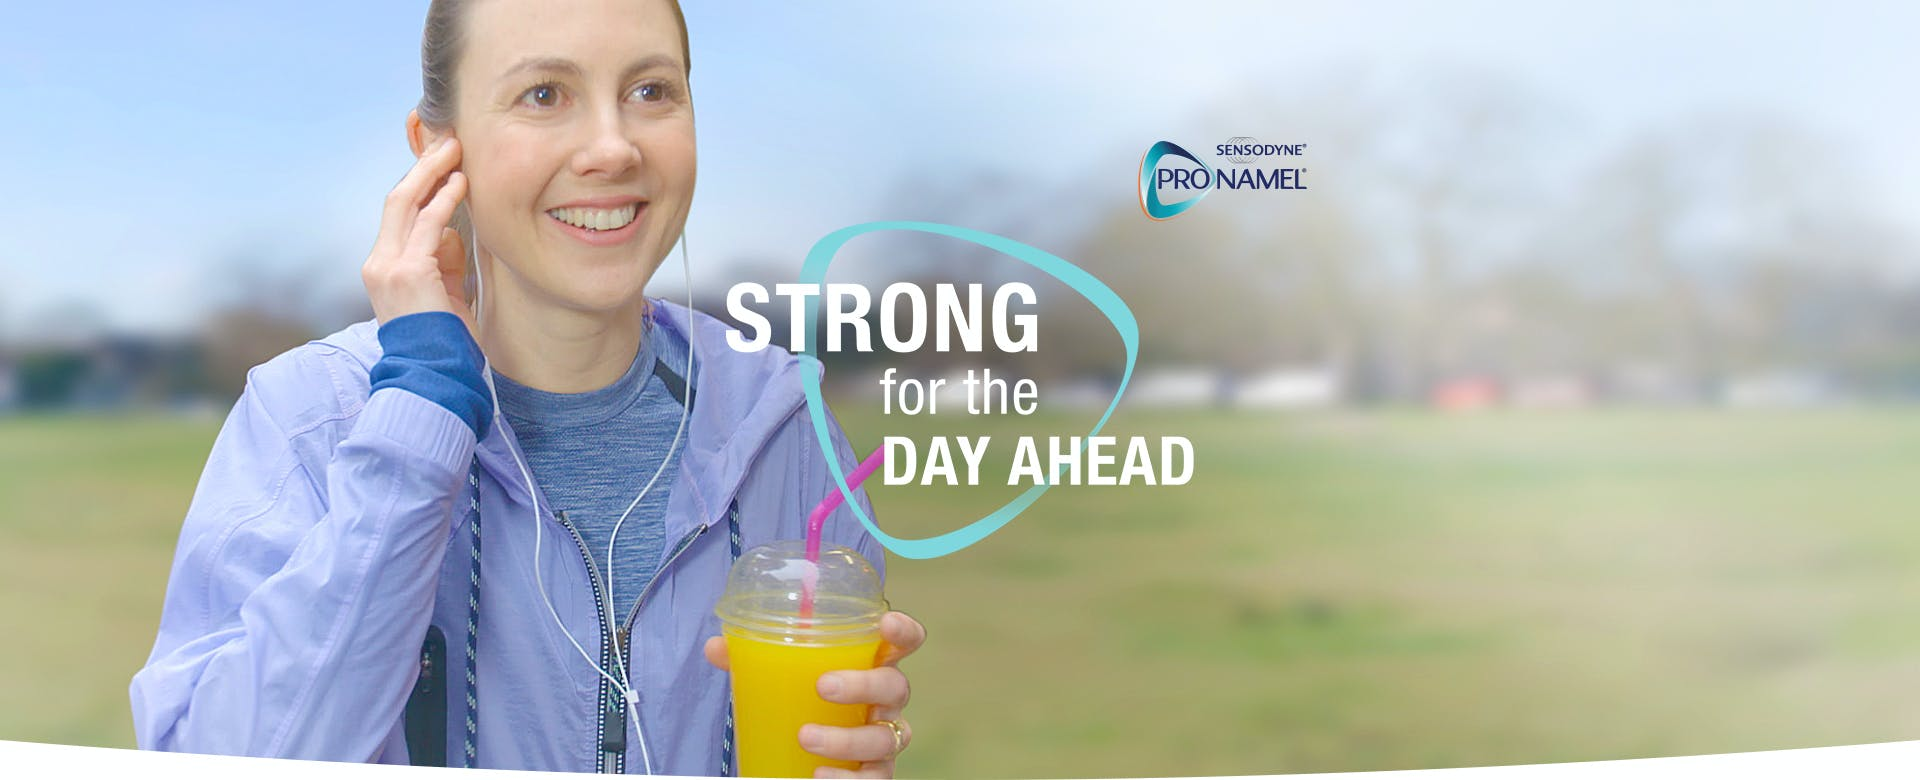 Smiling girl in jogging attire with earphones and drink